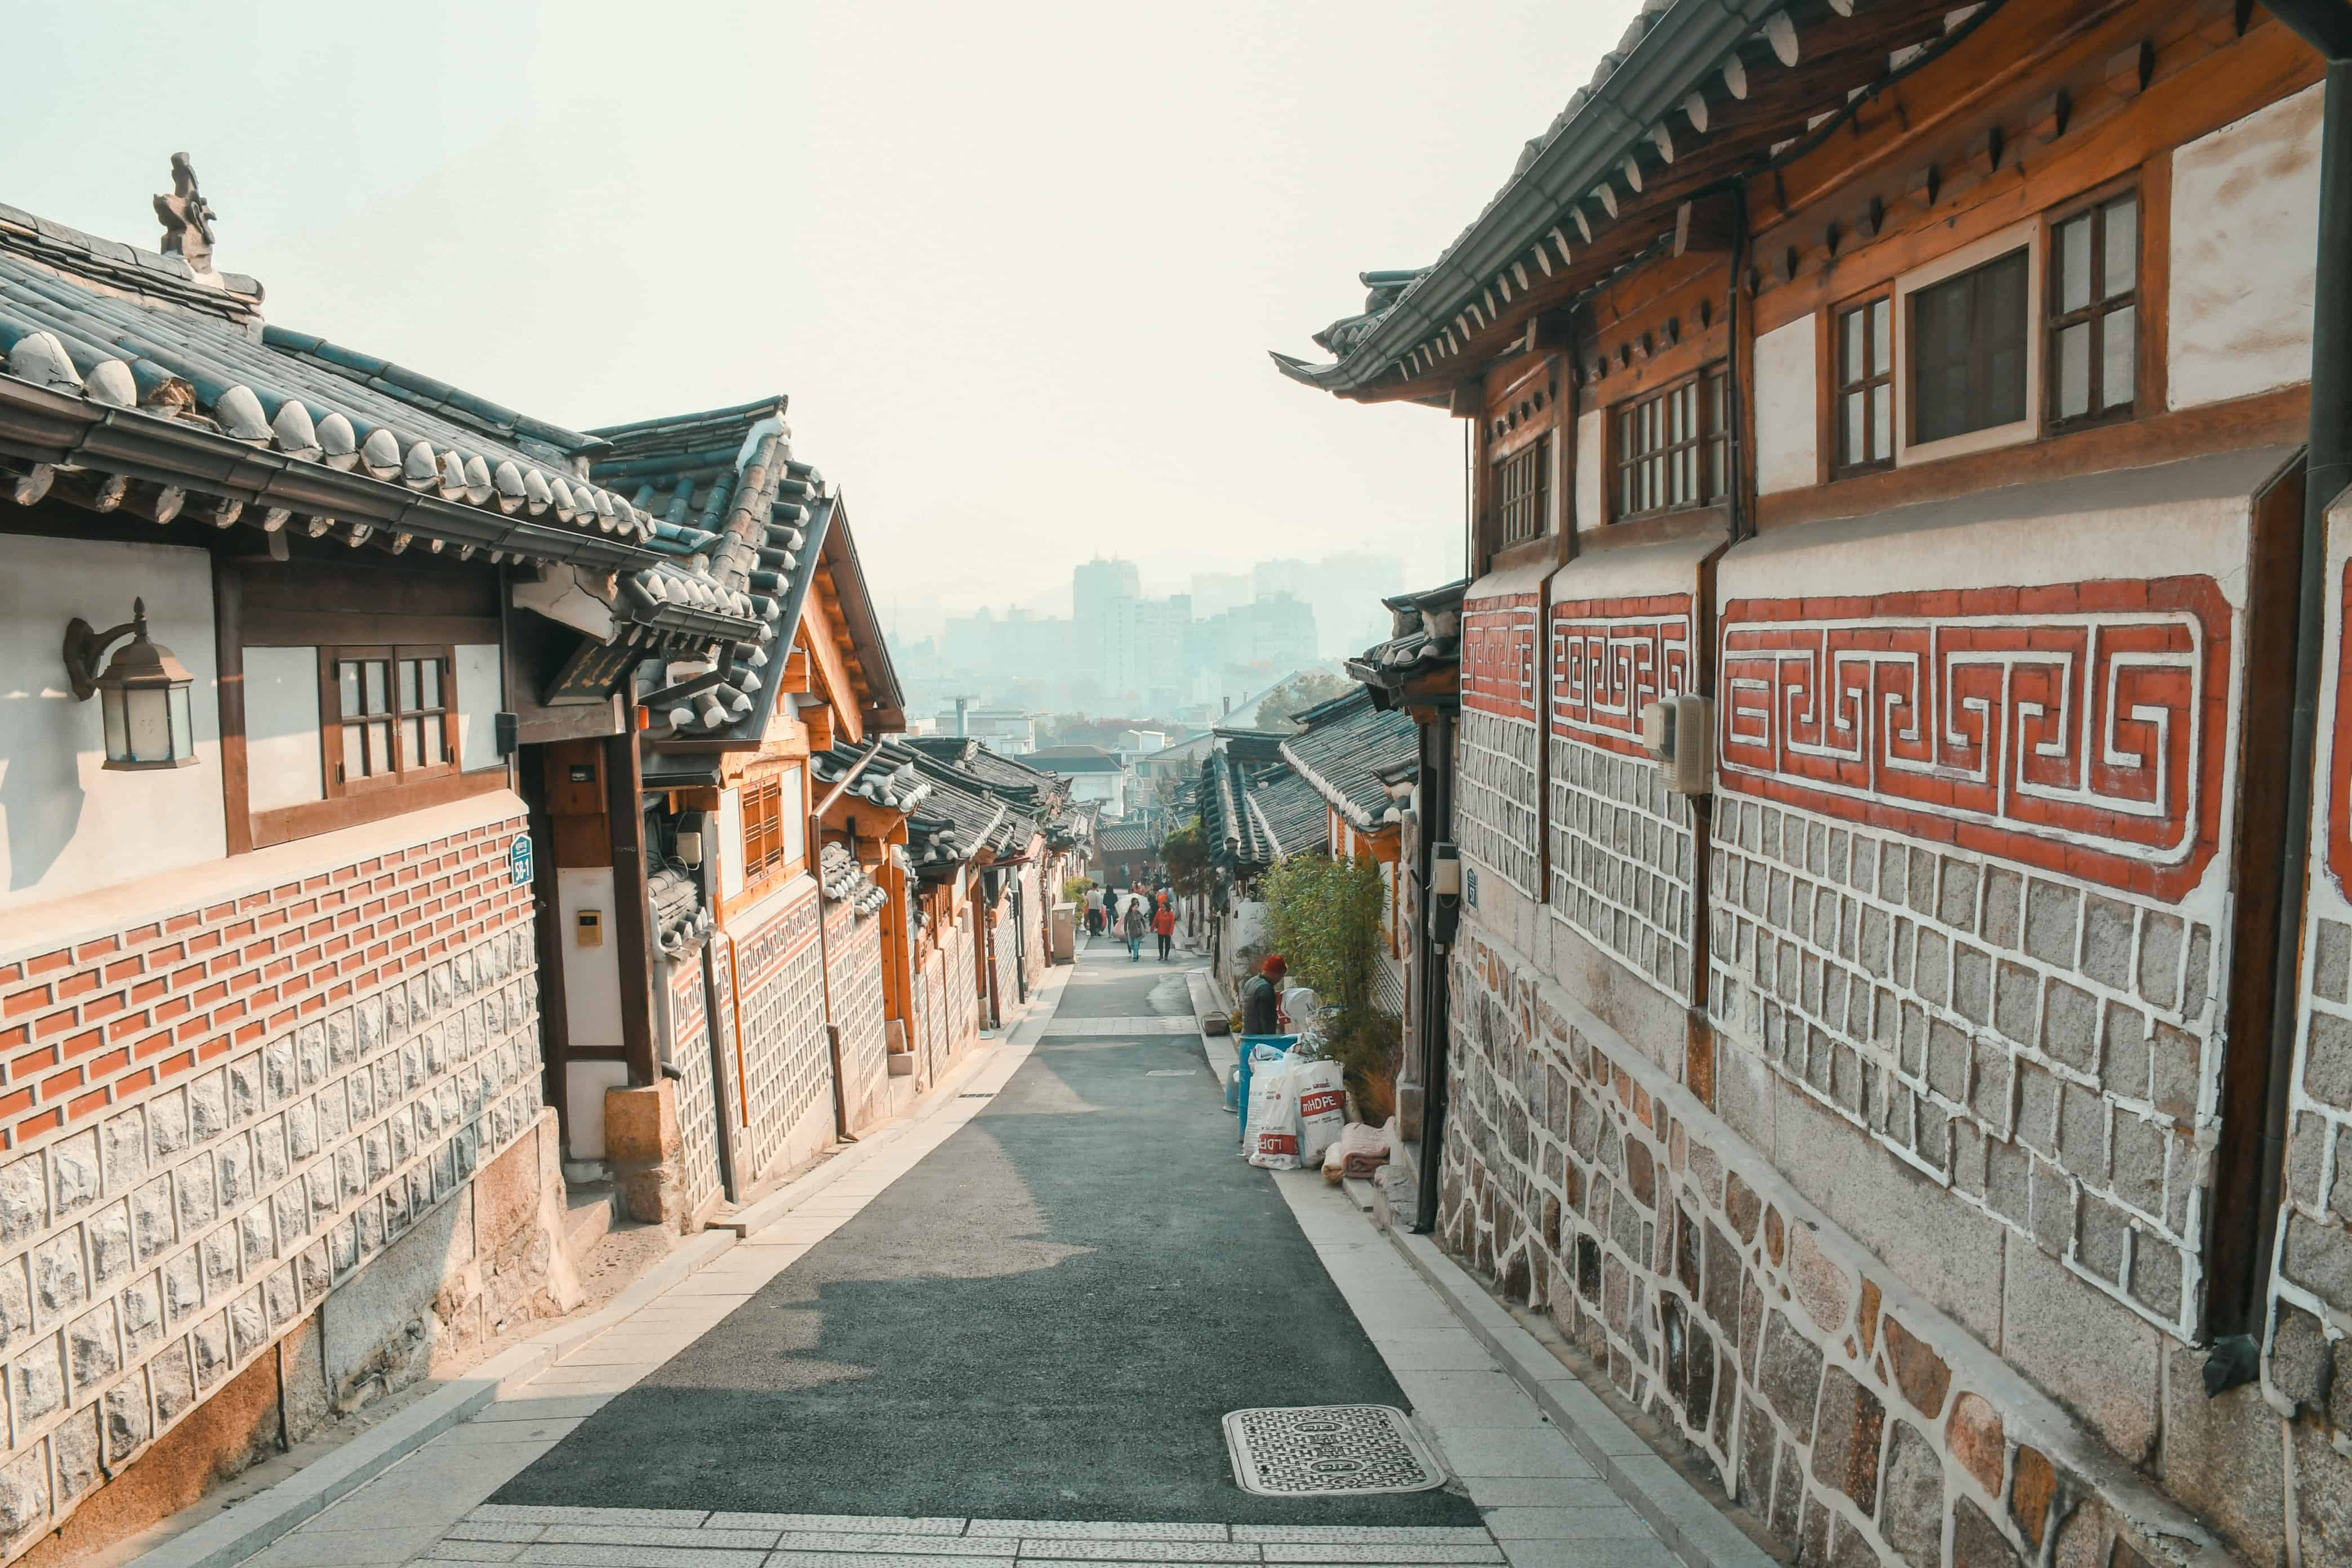 Bukchon Hanok Village view in Seoul